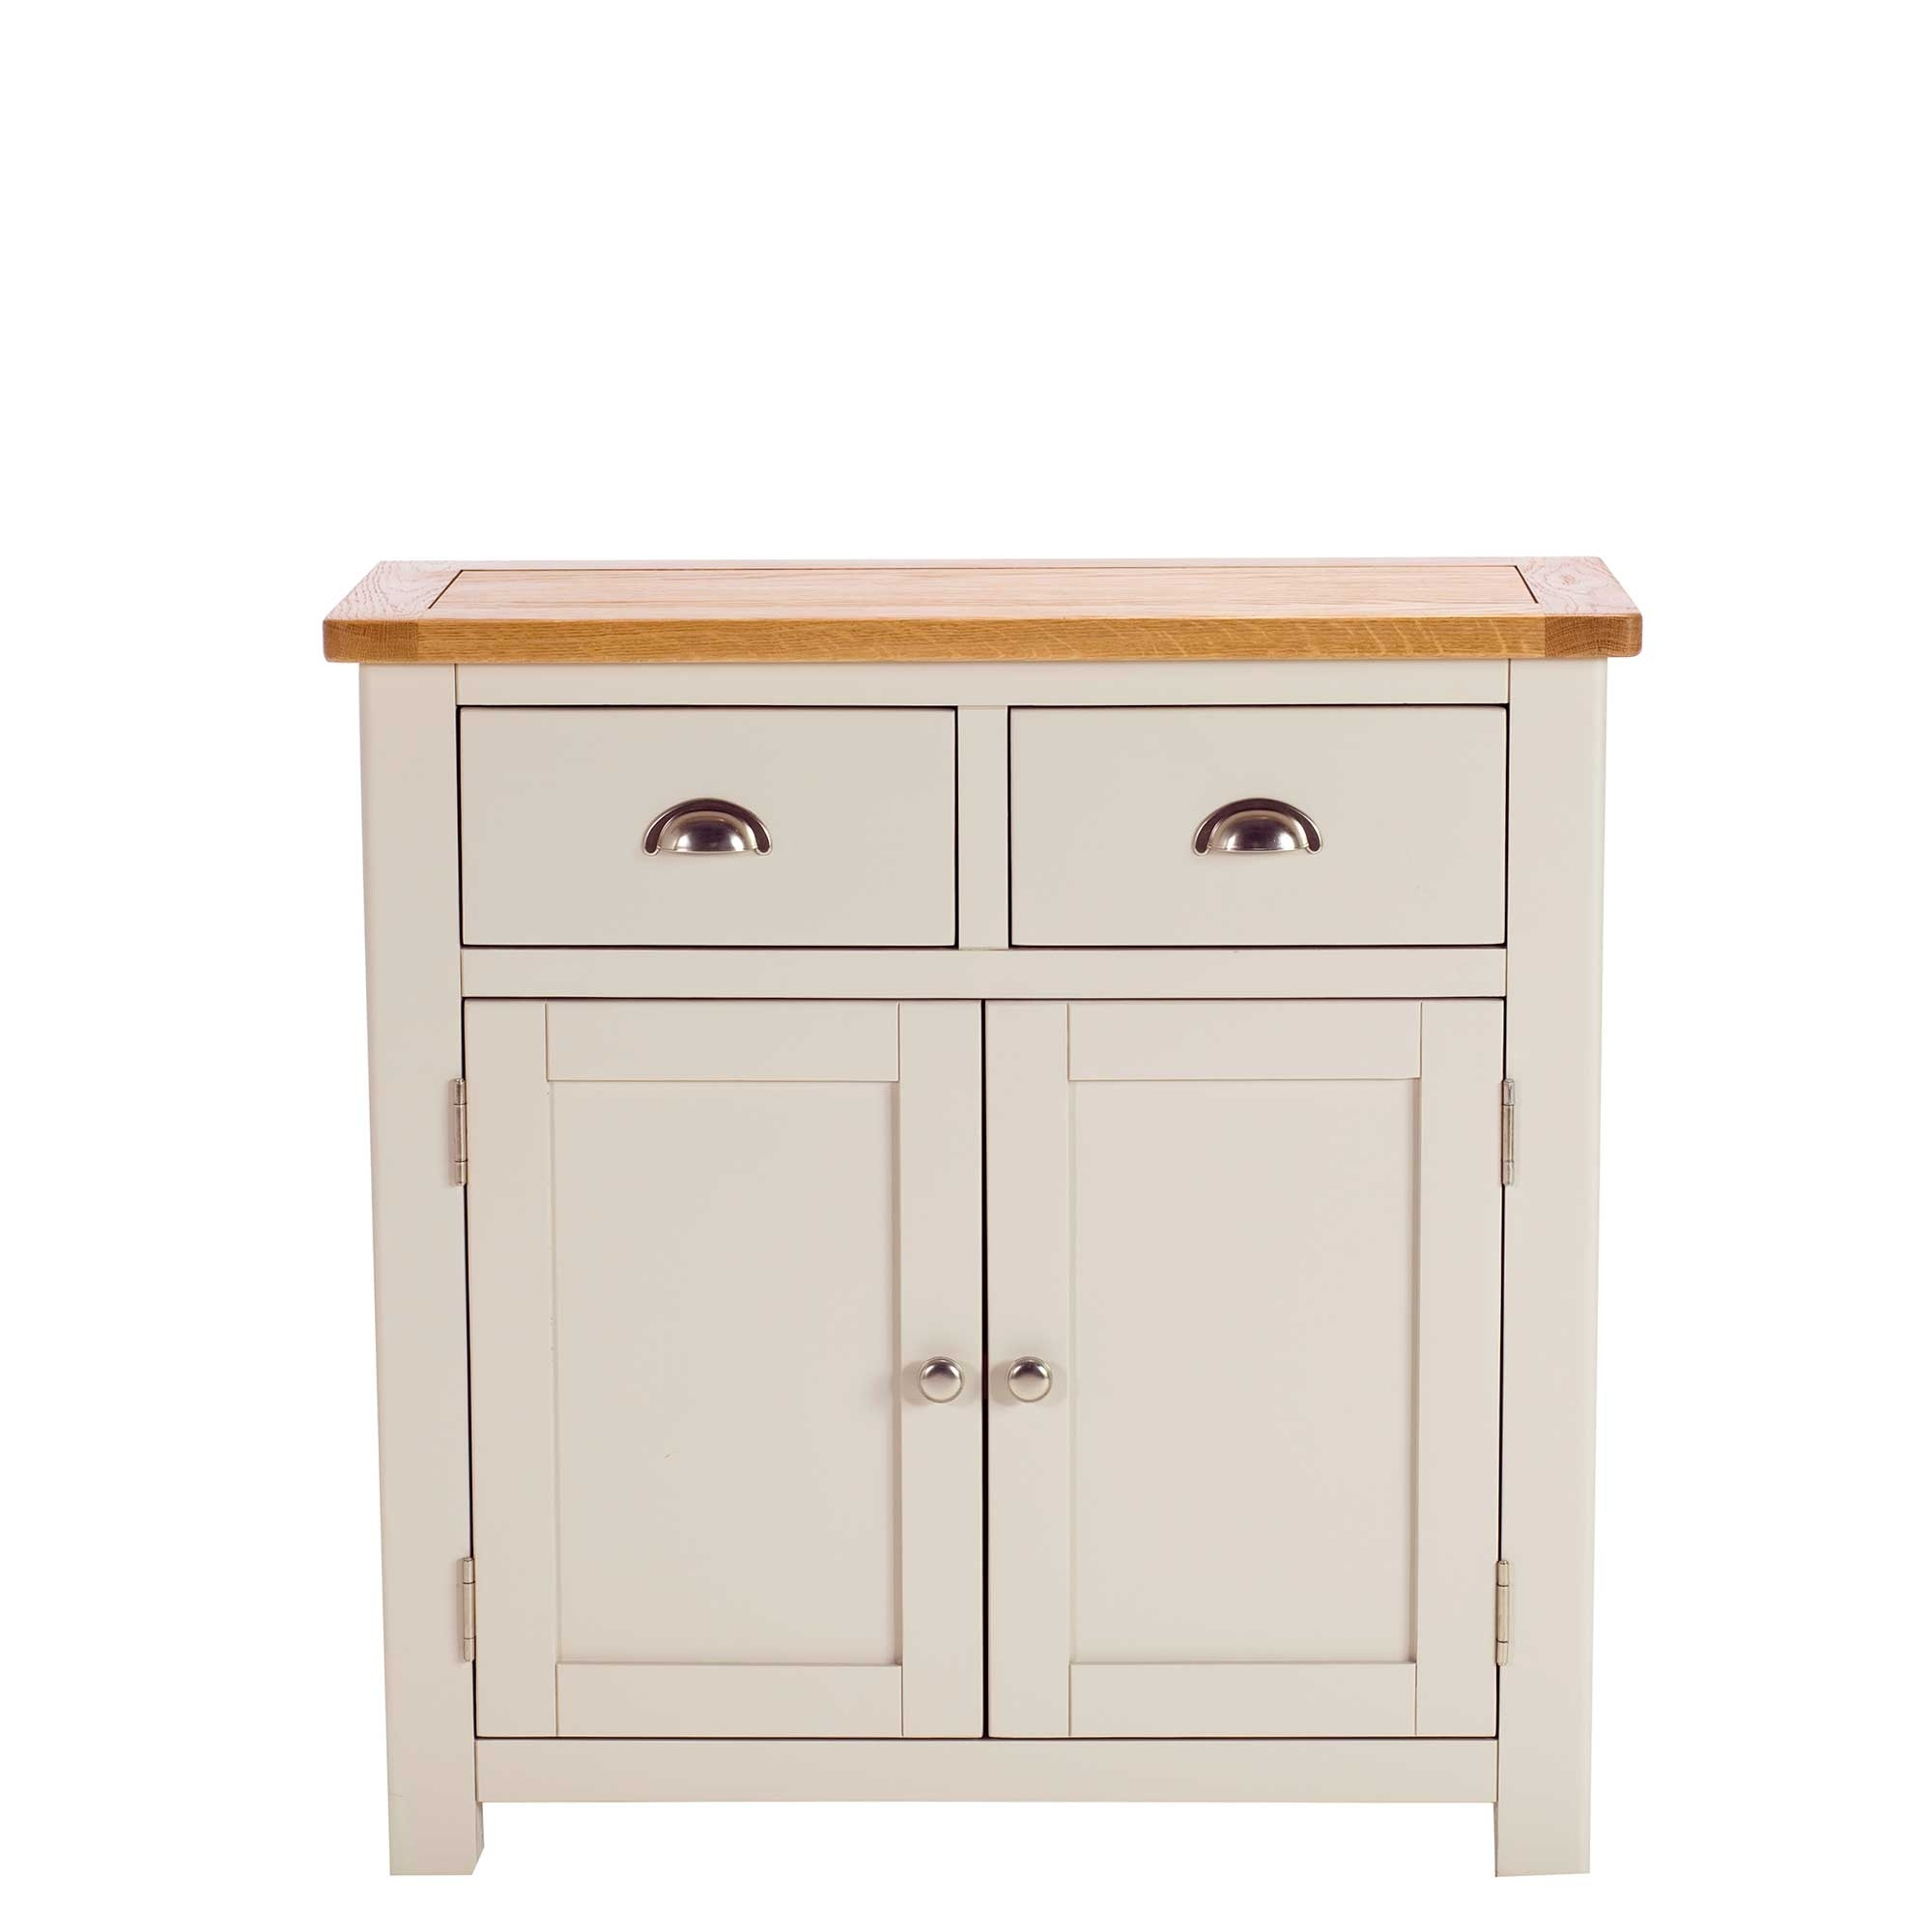 Eskdale 2 Door 2 Drawer Sideboard, Linen | Sideboards | Dining Room With Regard To Current 2 Drawer Sideboards (#7 of 20)